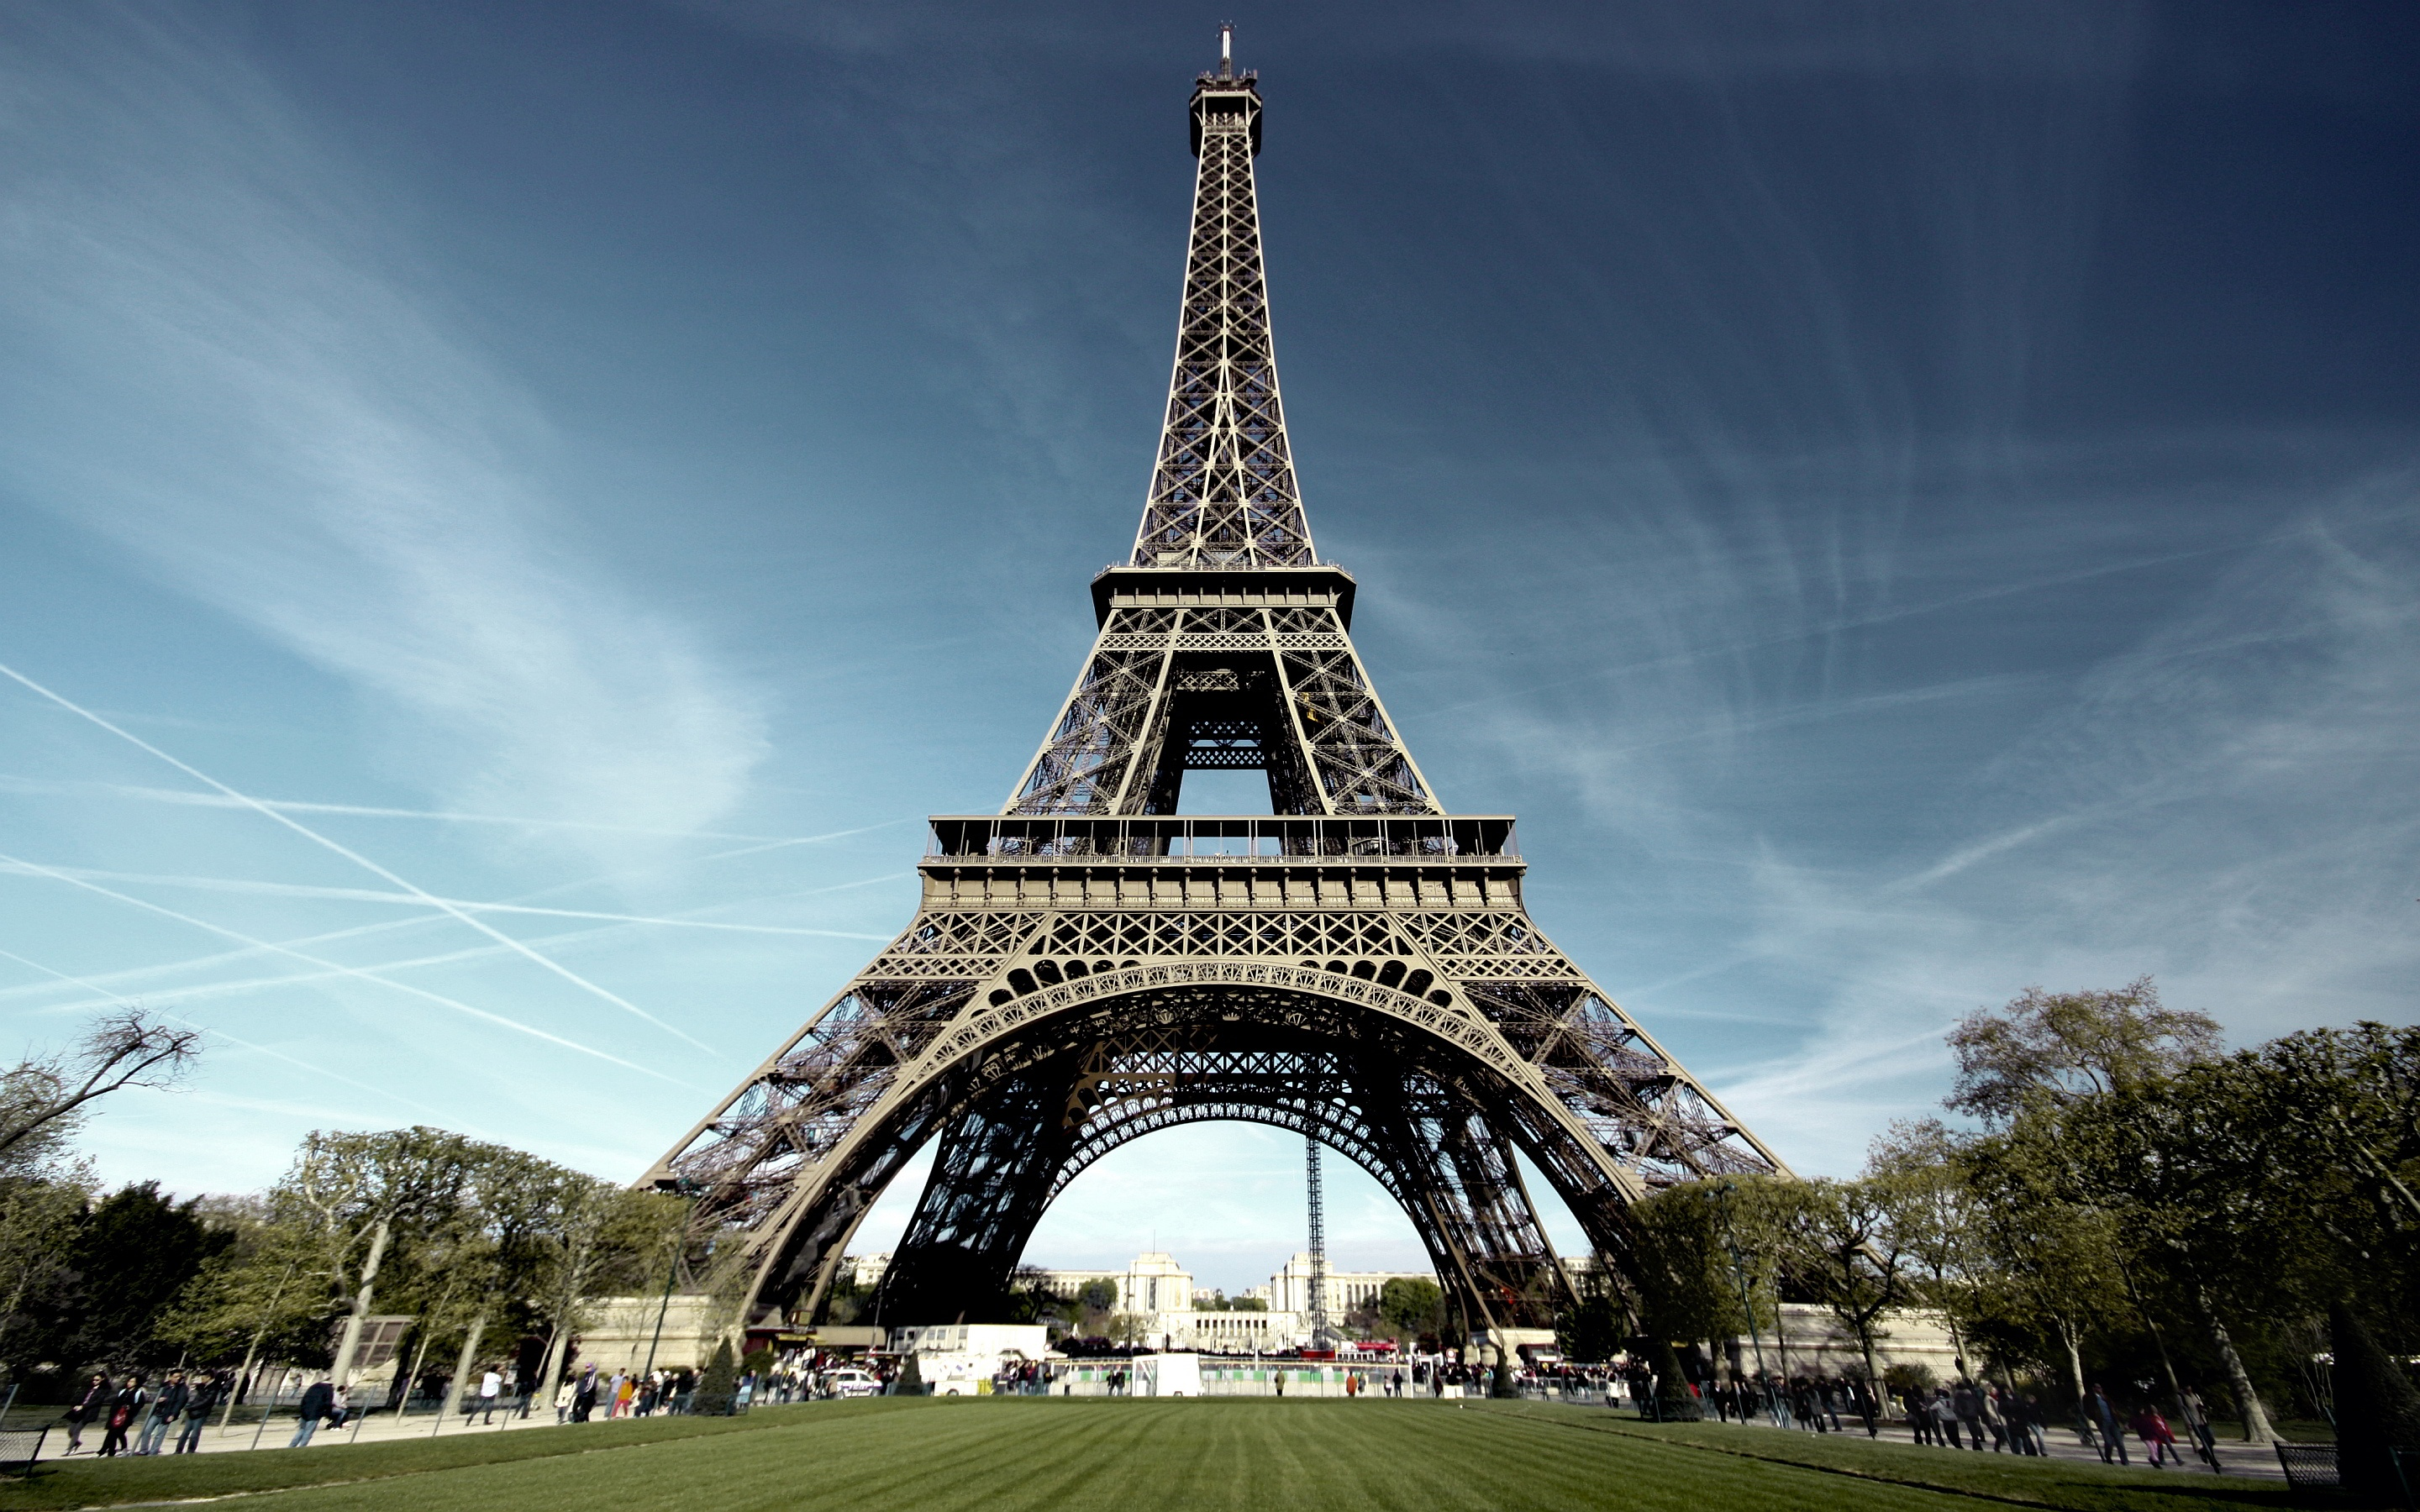 Eiffel tower wallpapers best wallpapers eiffel tower altavistaventures Image collections